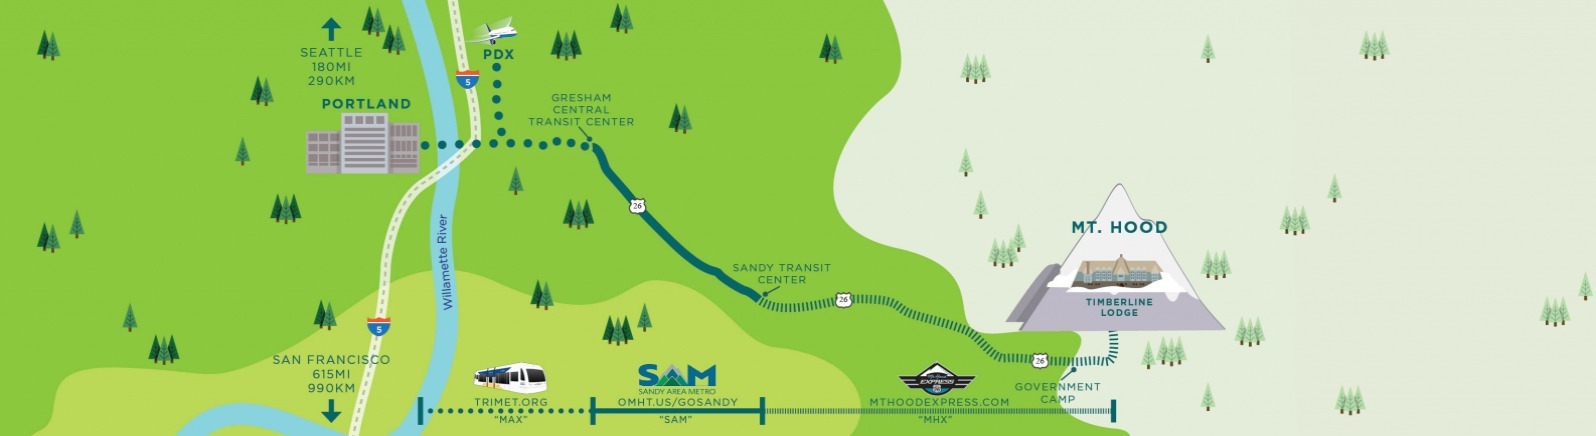 Car Free Map to Mt Hood